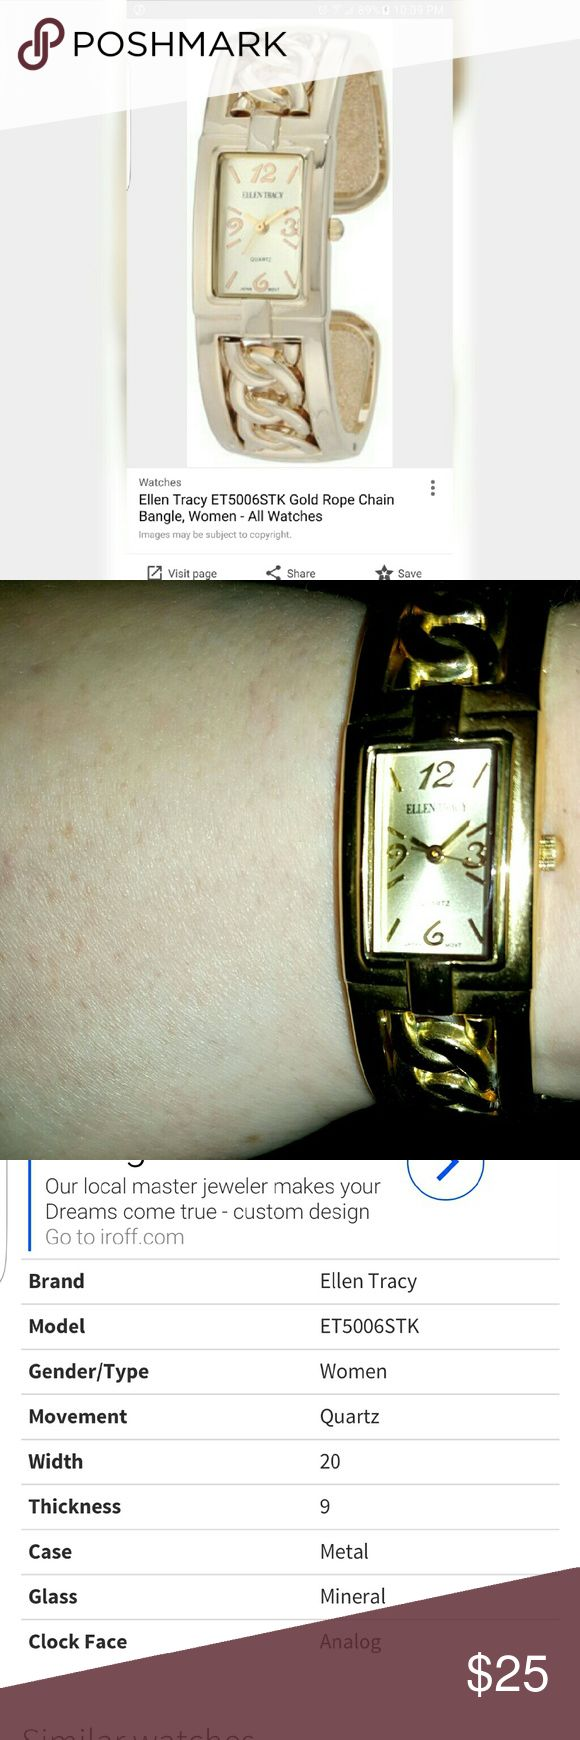 Ellen Tracy Gold Rope Chain Bangle Watch Needs a new battery but GUC.... Pic 3 describes the features...Feel free to ask any questions.... Comes w a generic white box... Make an offer through OFFER button  Negotiations welcome No trades No PayPal Bundles encouraged Ellen Tracy Accessories Watches